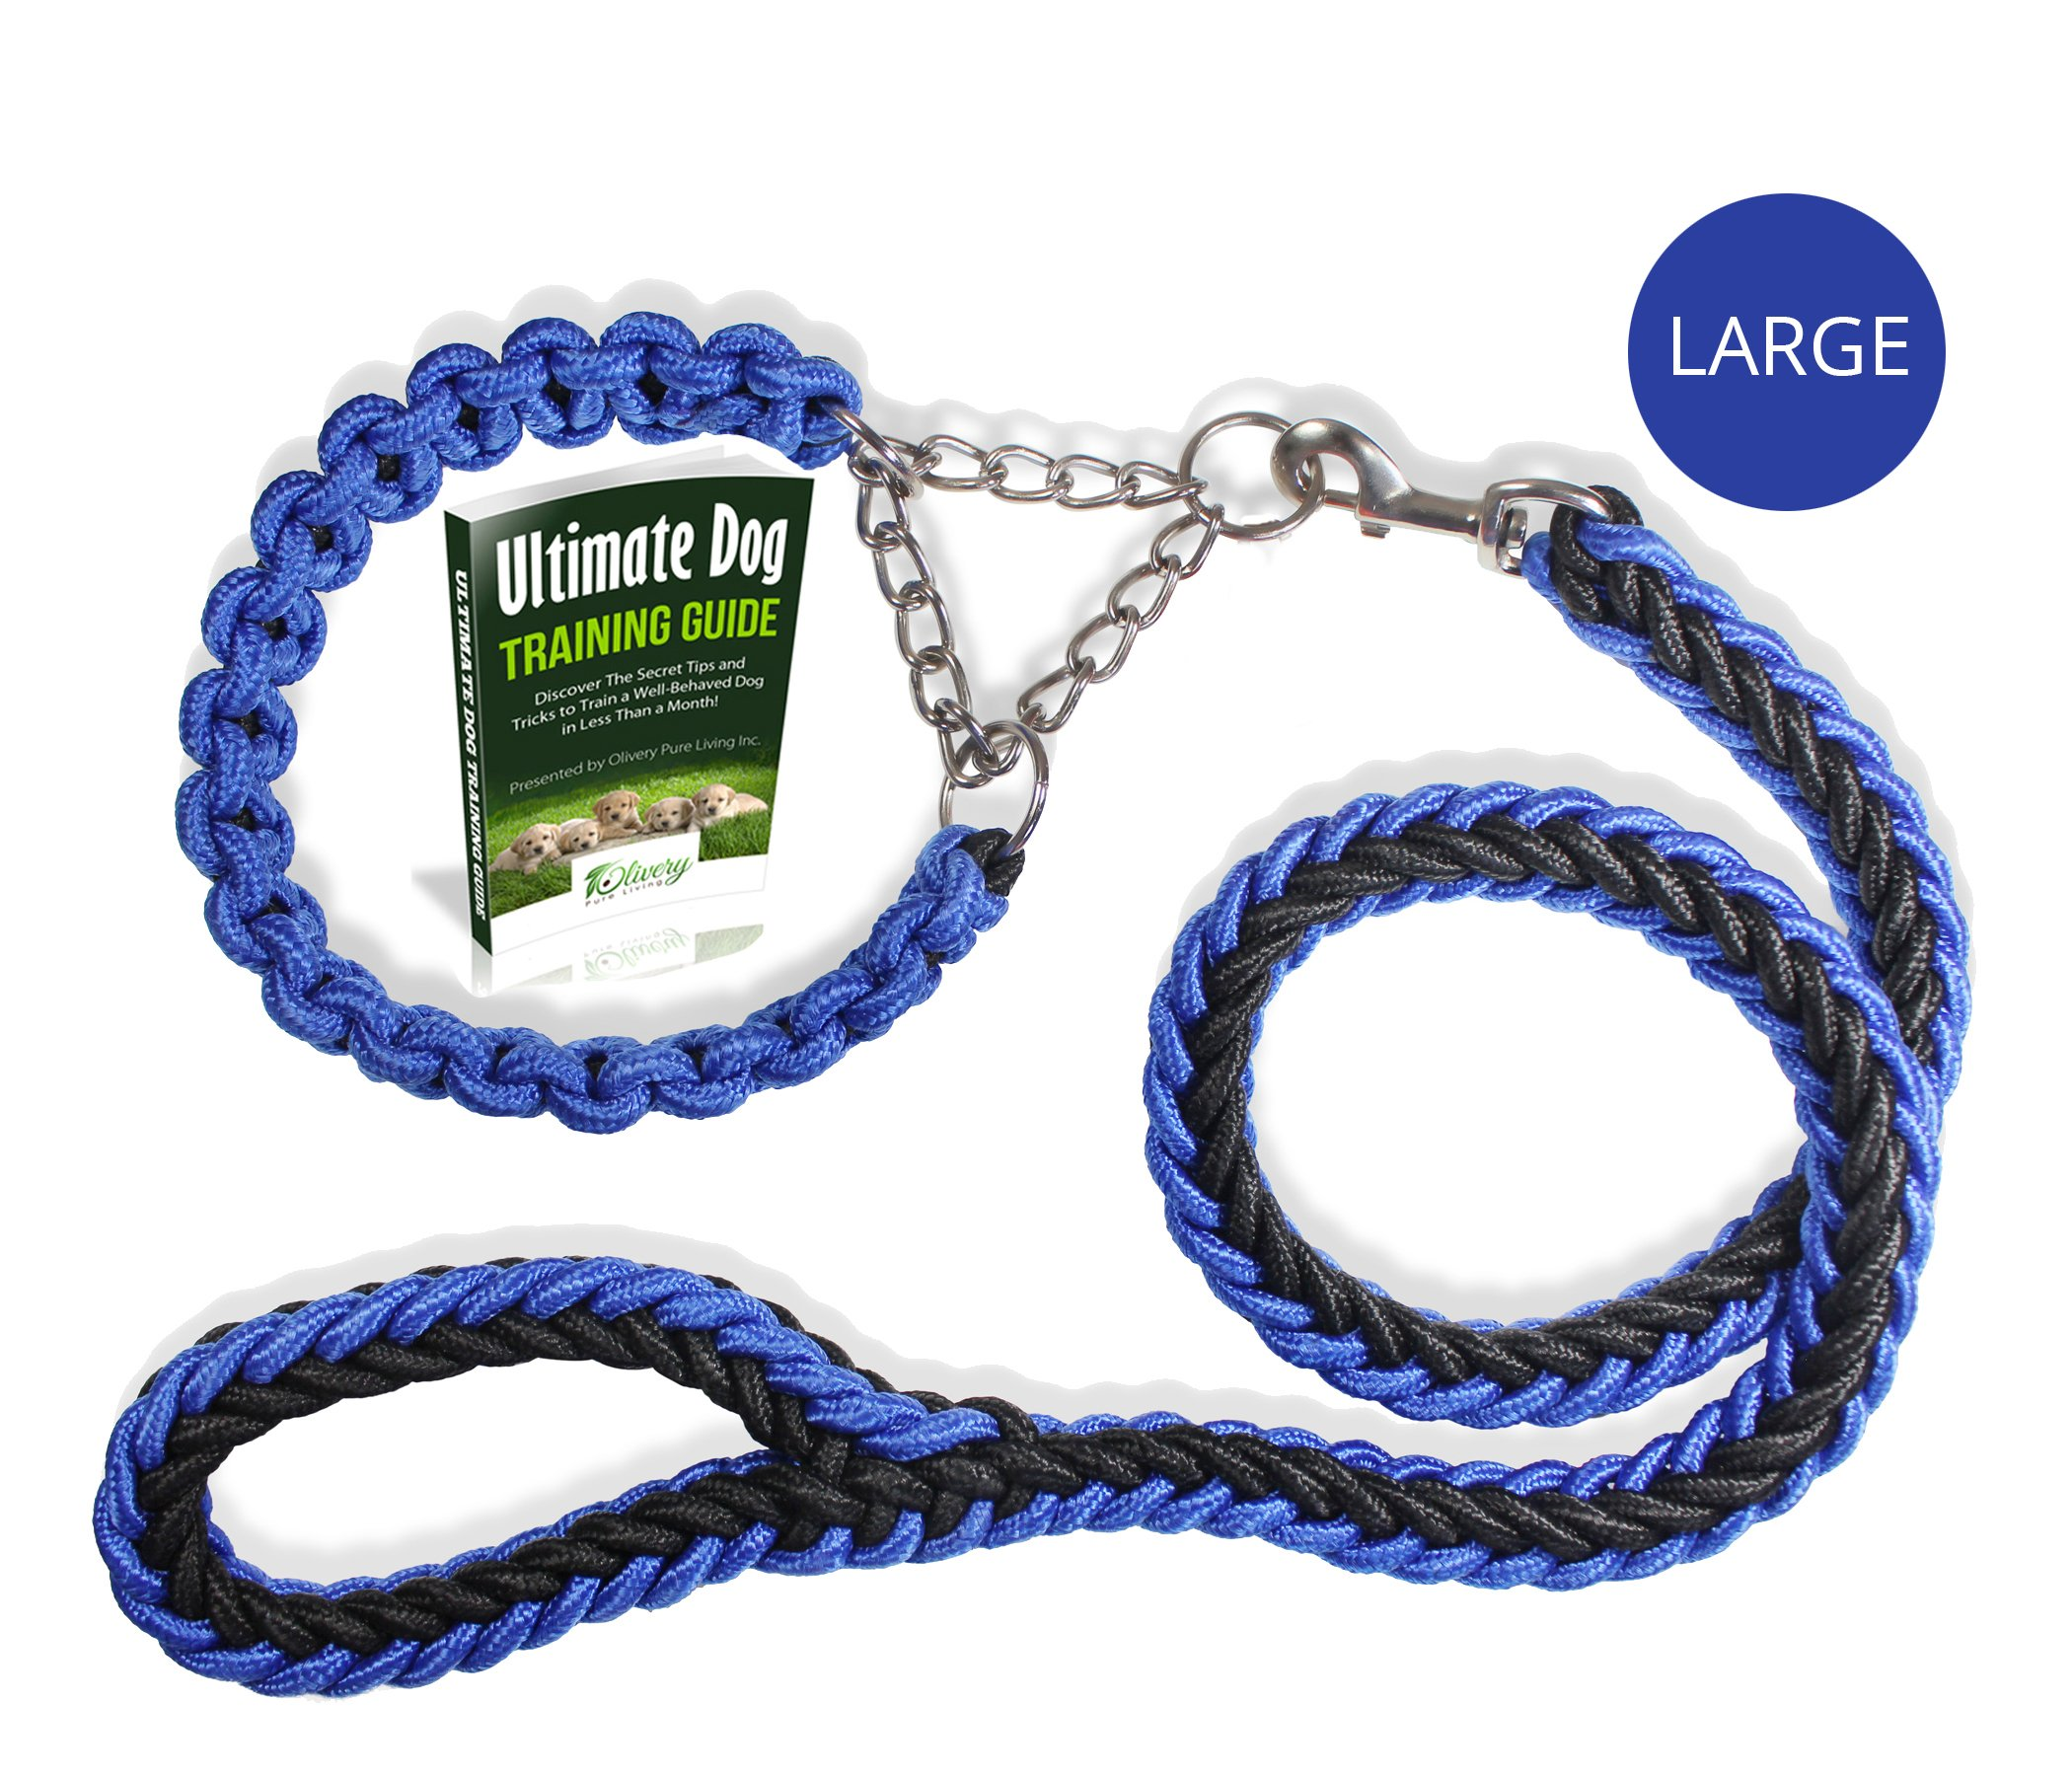 Olivery Heavy Duty Dog Martingale Braided Collar with Solid Hand Crafted Leash (Blue, Large)